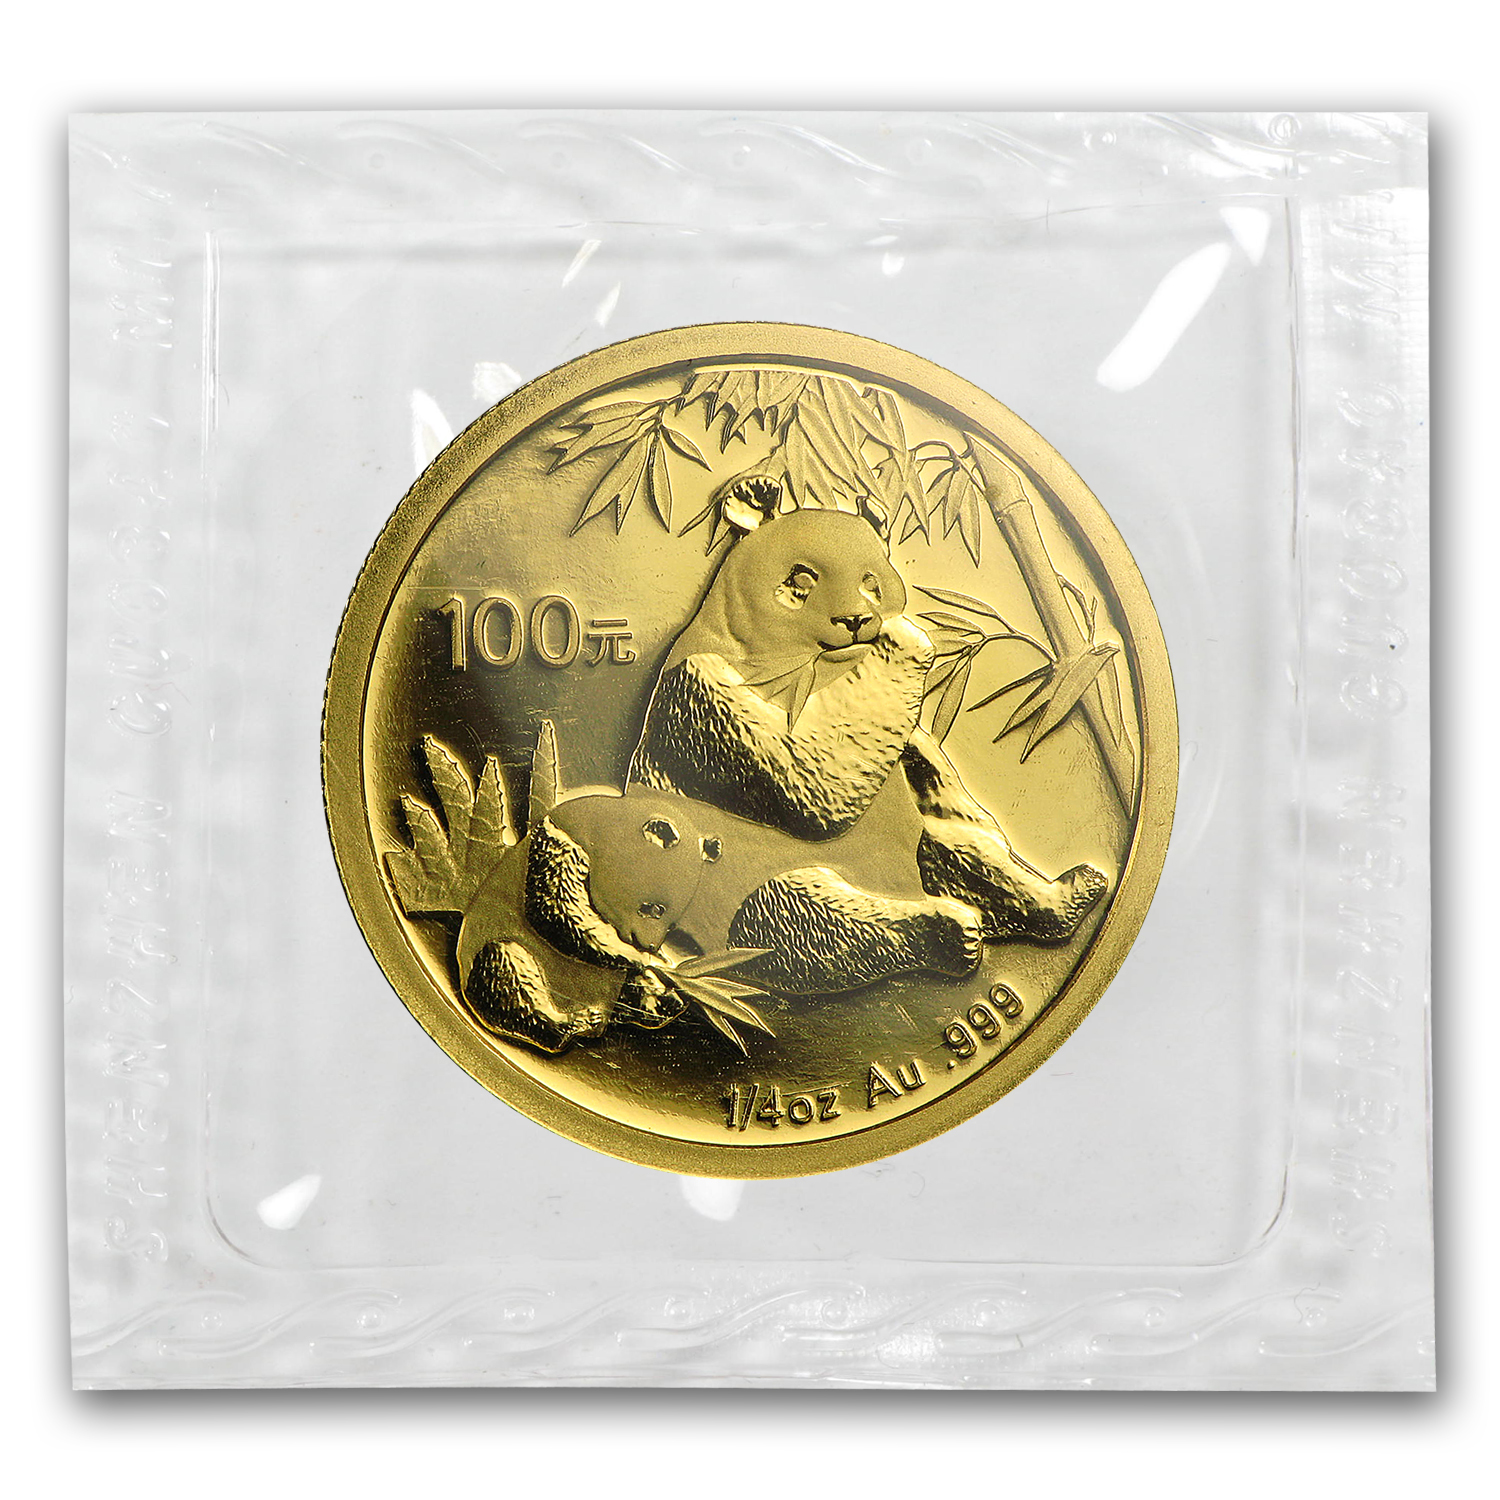 2007 1/4 oz Gold Chinese Panda BU (Sealed)